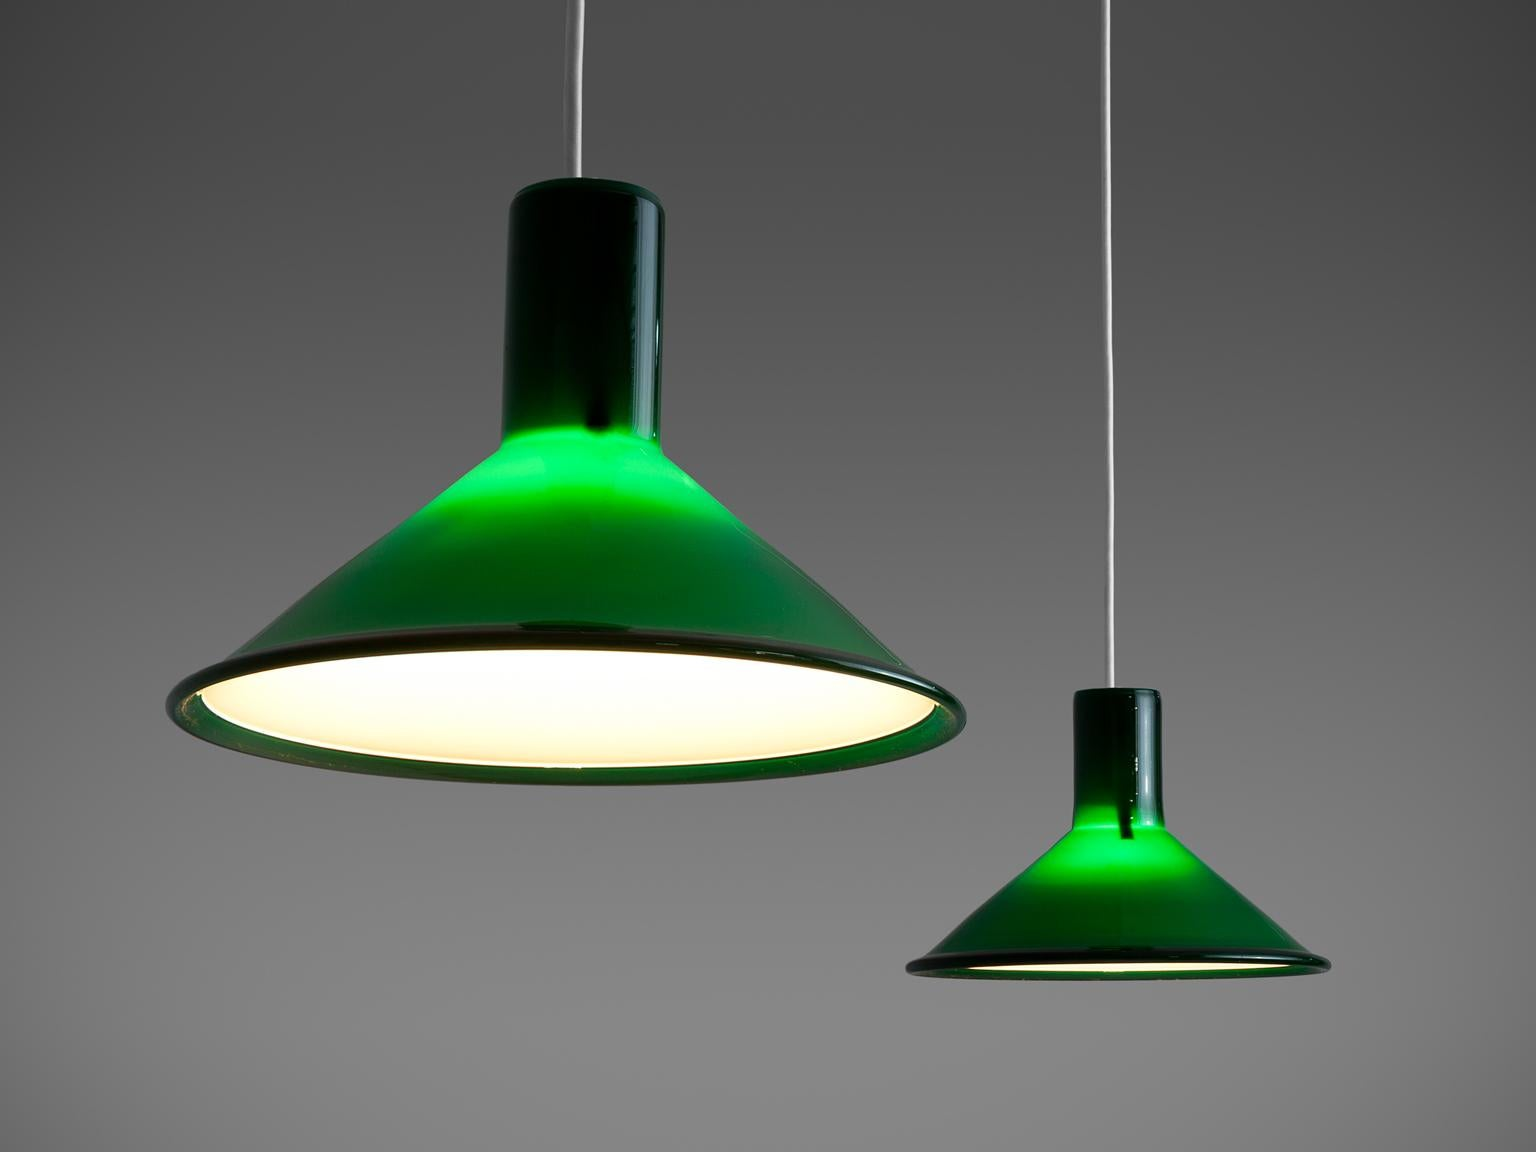 Green glass pendant lighting Sage Green Michael Bang For Holmegaard Pair Of Glass Pendant Lights In Green Glass Denmark 1stdibs Pair Of Michael Bang For Holmegaard Dark Green Pendants For Sale At